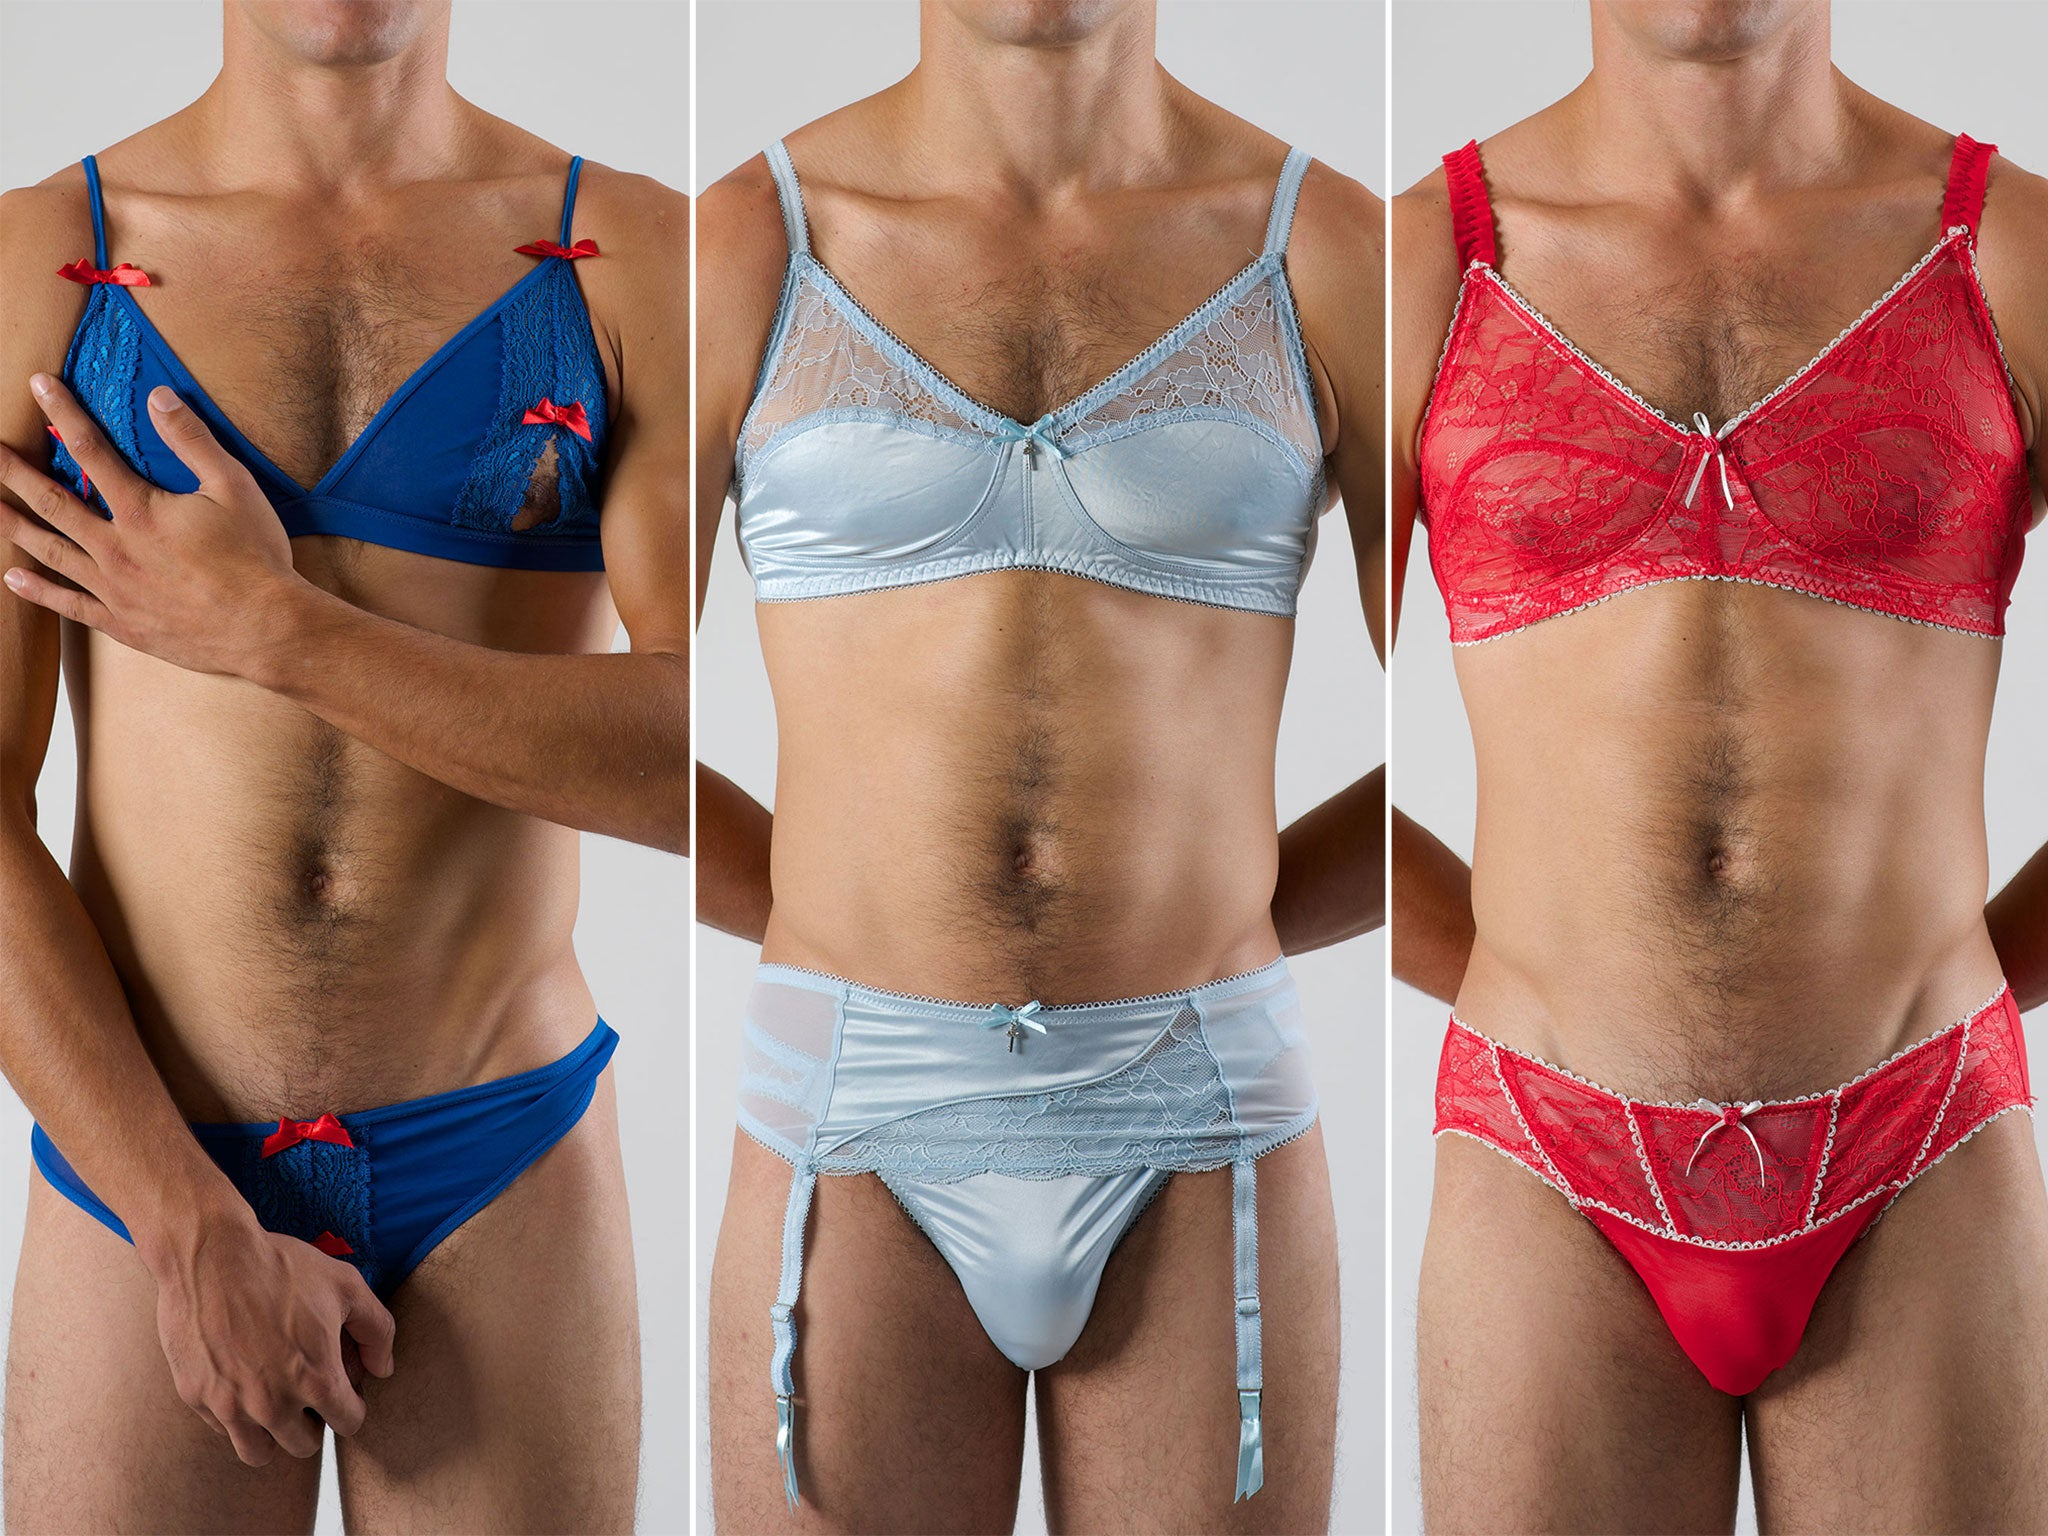 Discover the huge range of Triumph underwear and get excited about the perfect fit and choice of exclusive materials in the women's lingerie collection Our Shop uses cookies for the purpose of delivering best service and advice for you as a consumer.